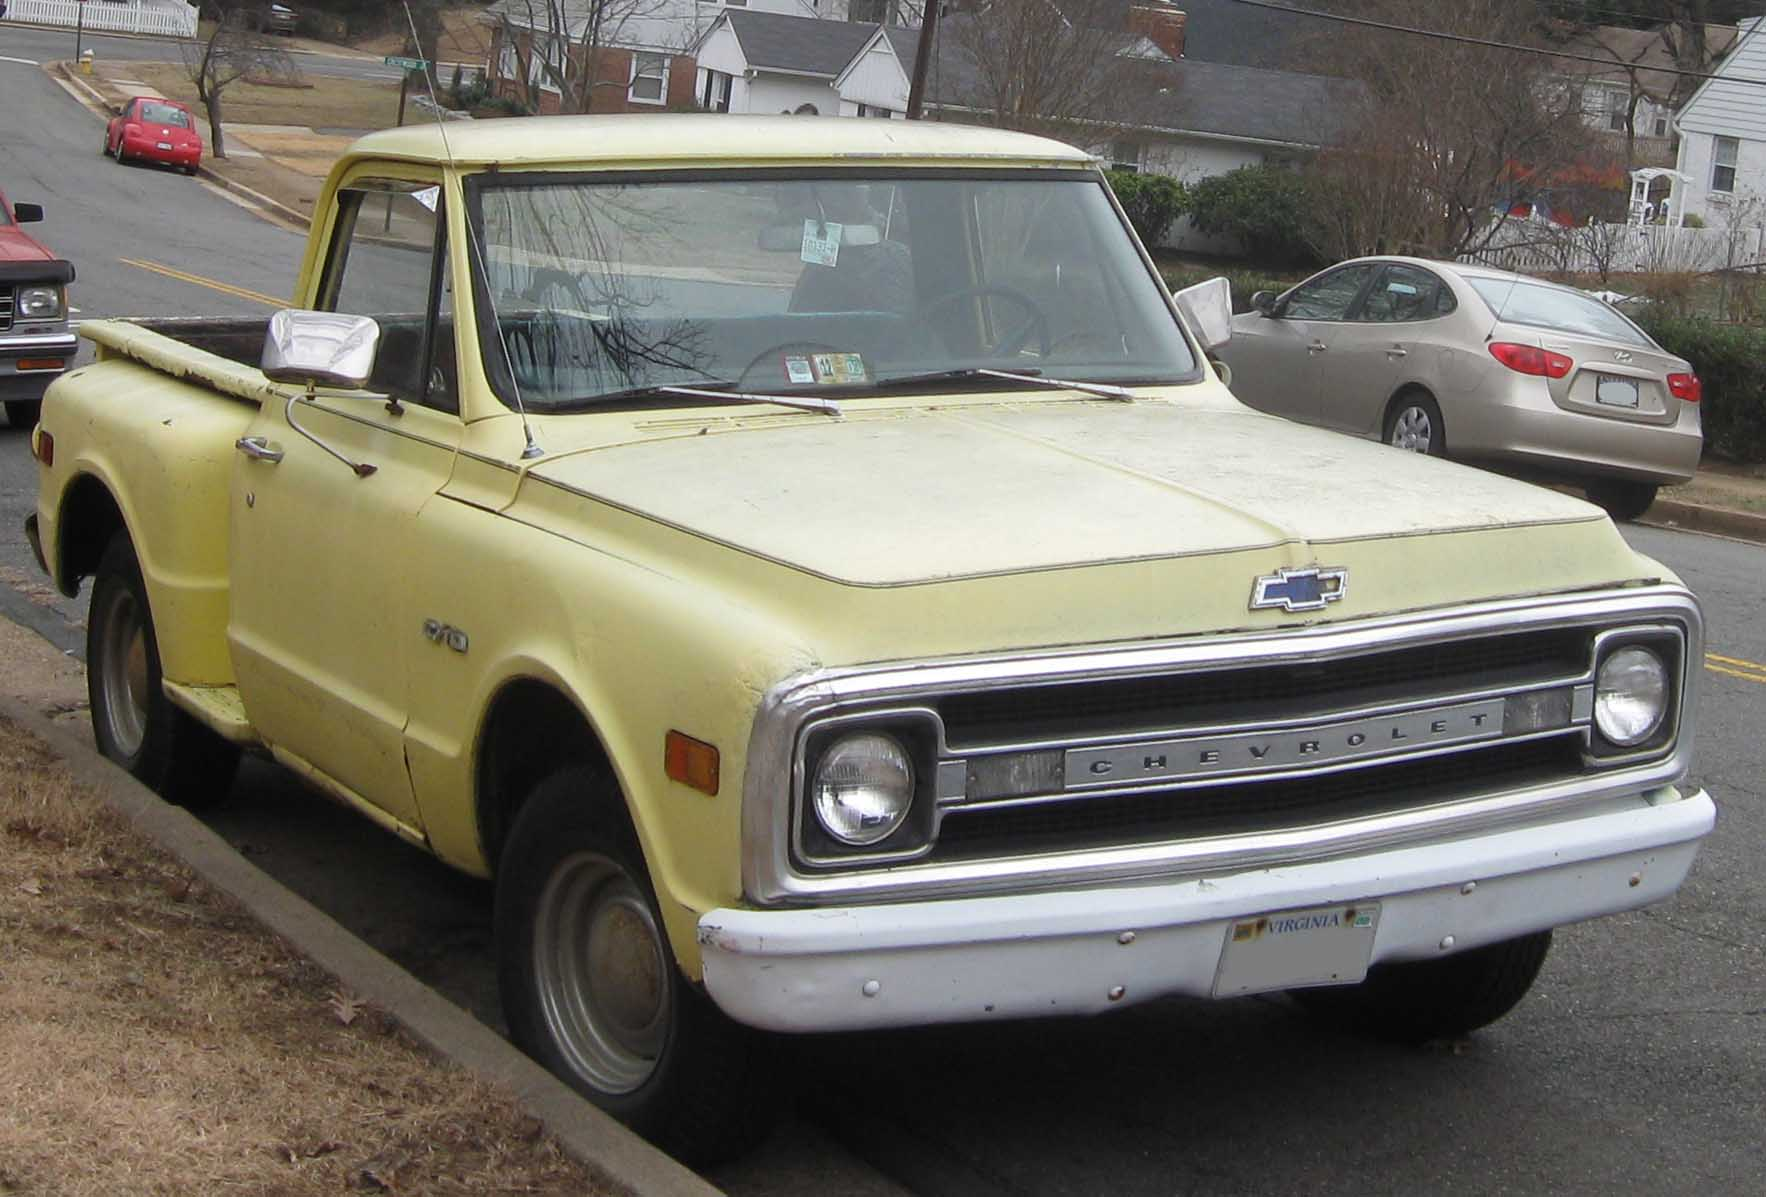 File:Chevrolet C-10 pickup.jpg - Wikipedia